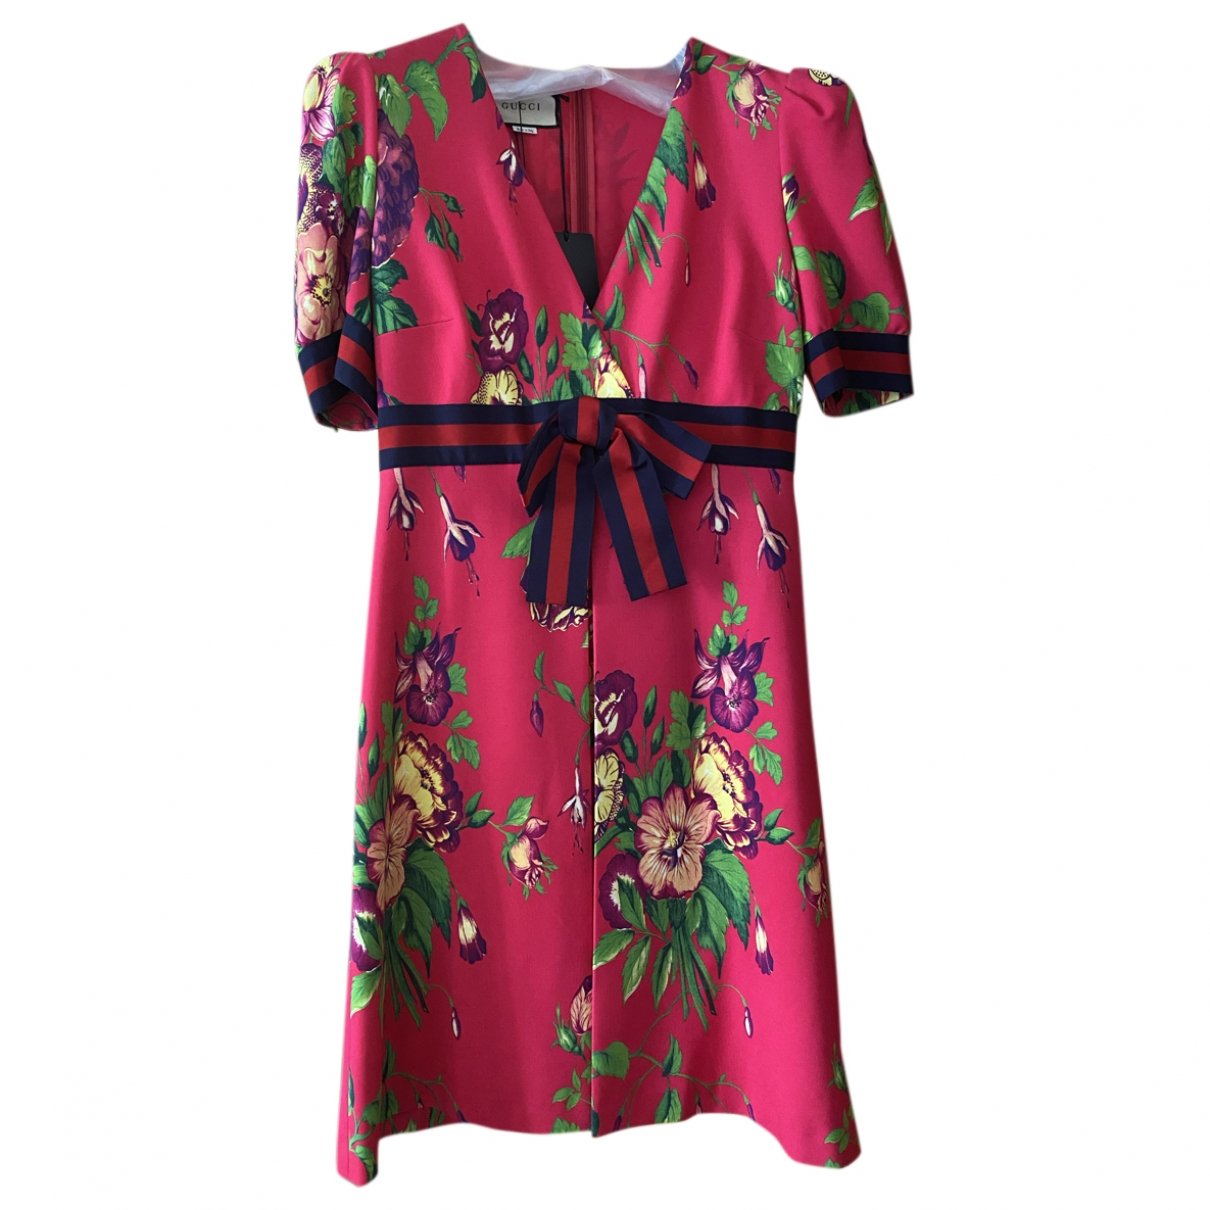 Gucci \N Pink Cotton - elasthane dress for Women L International